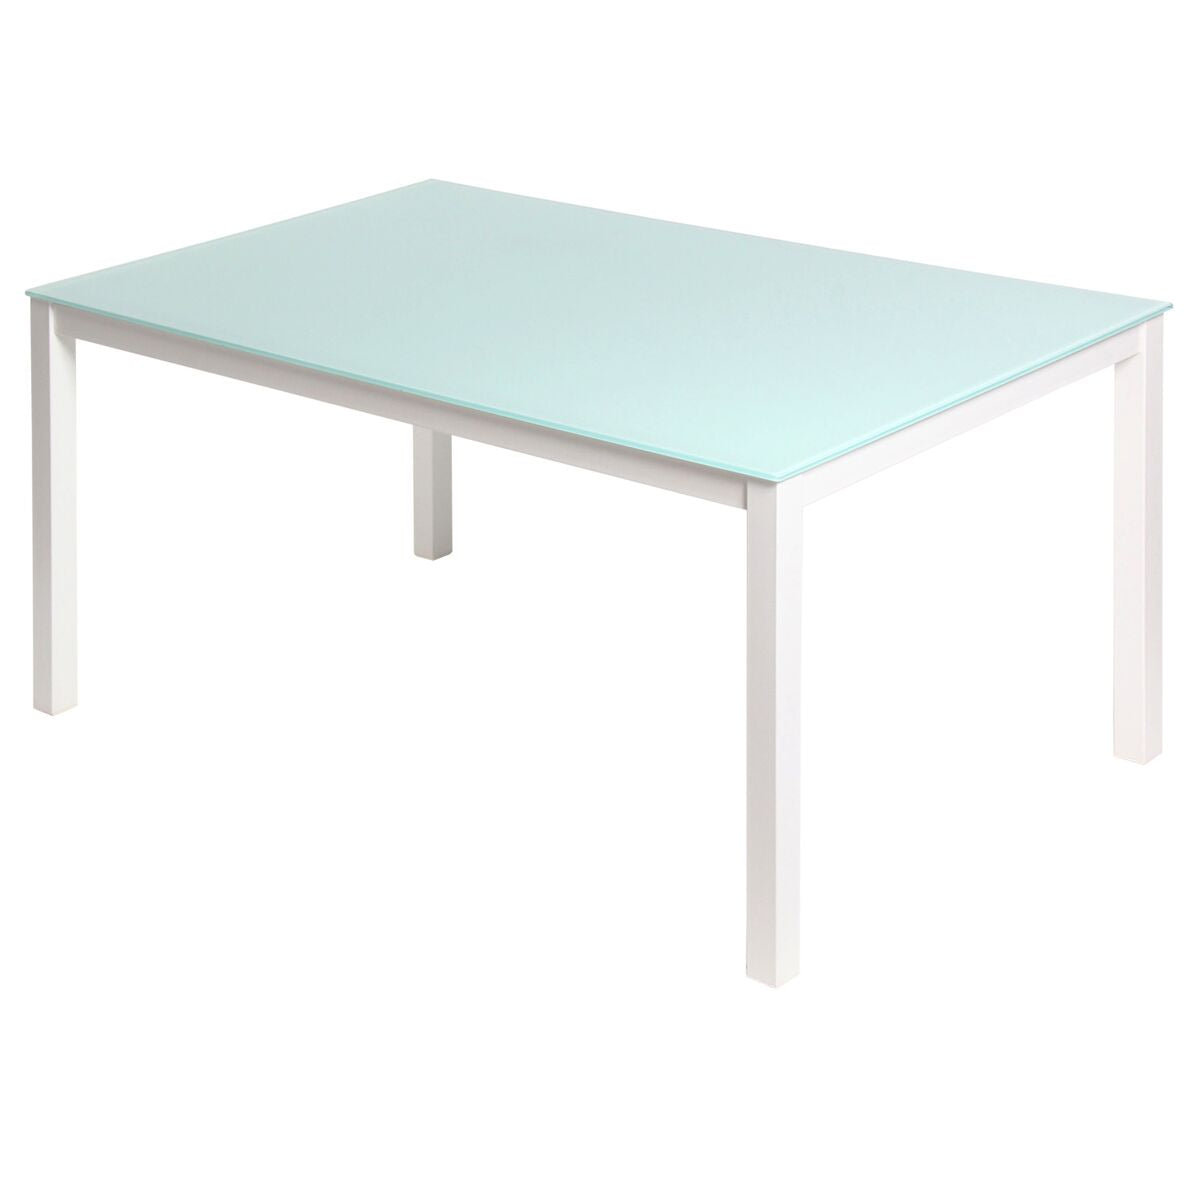 "59"" Charming Office Desk in White Tempered Glass"